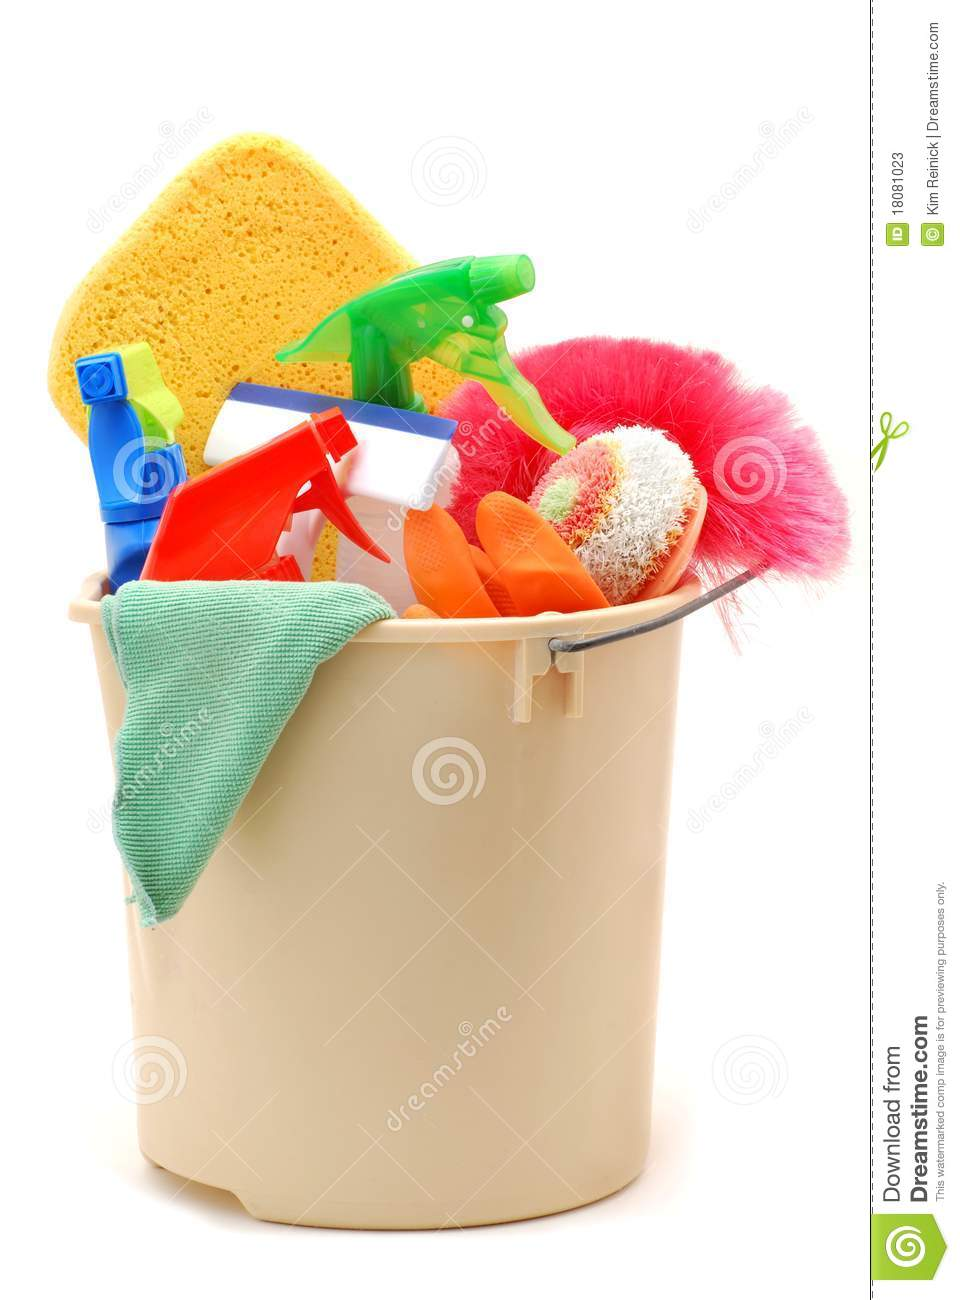 House cleaning stock photos image 18081023 for House cleaning stock photos